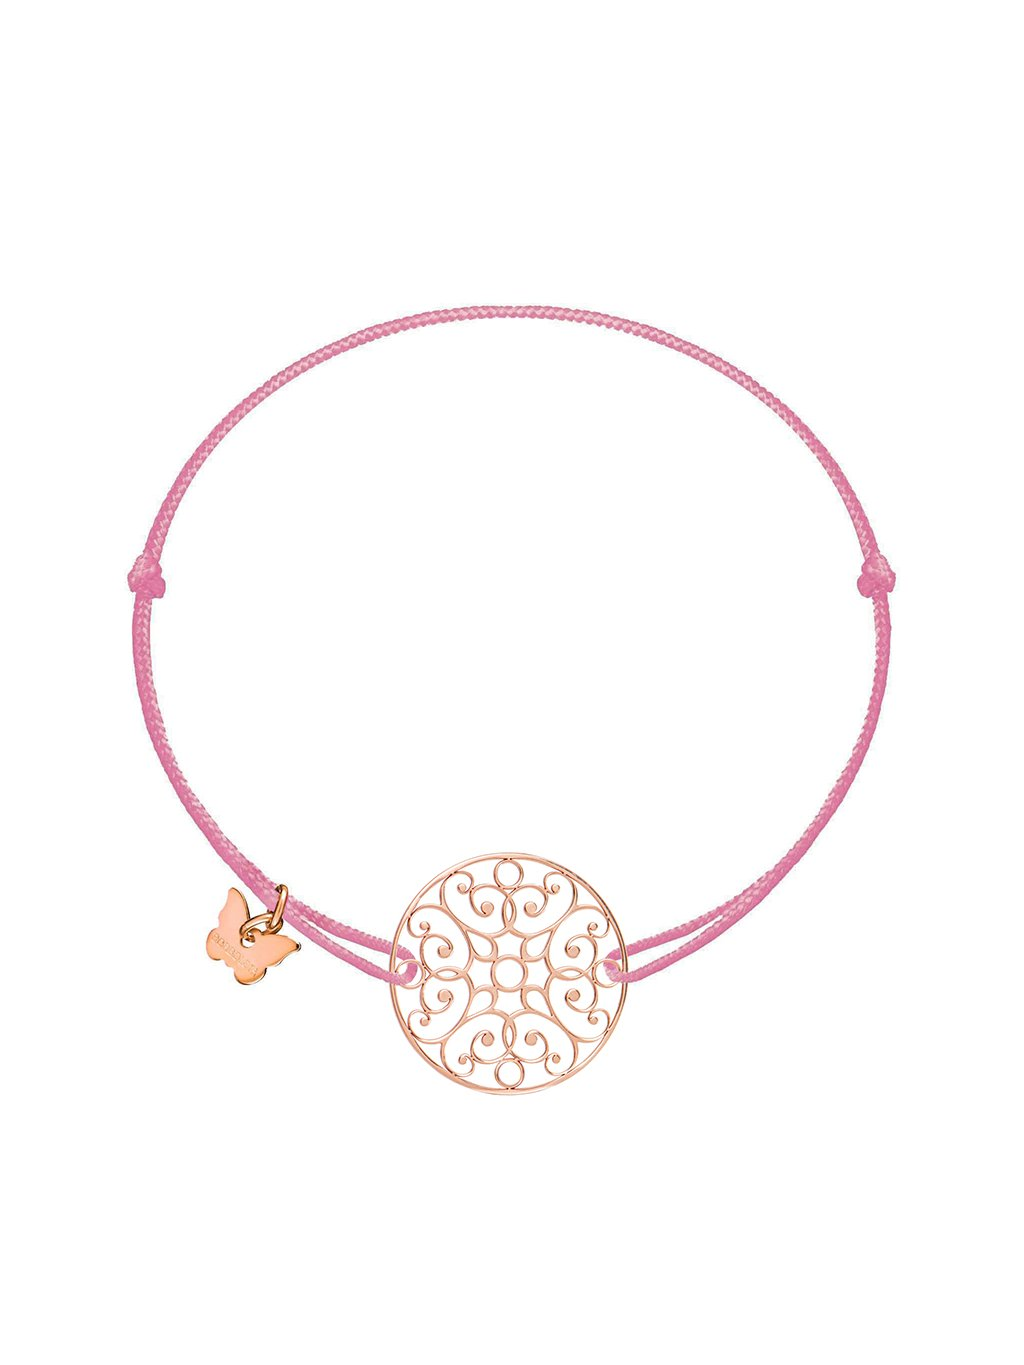 Lace Circle bracelet rosegold plated on antique pink